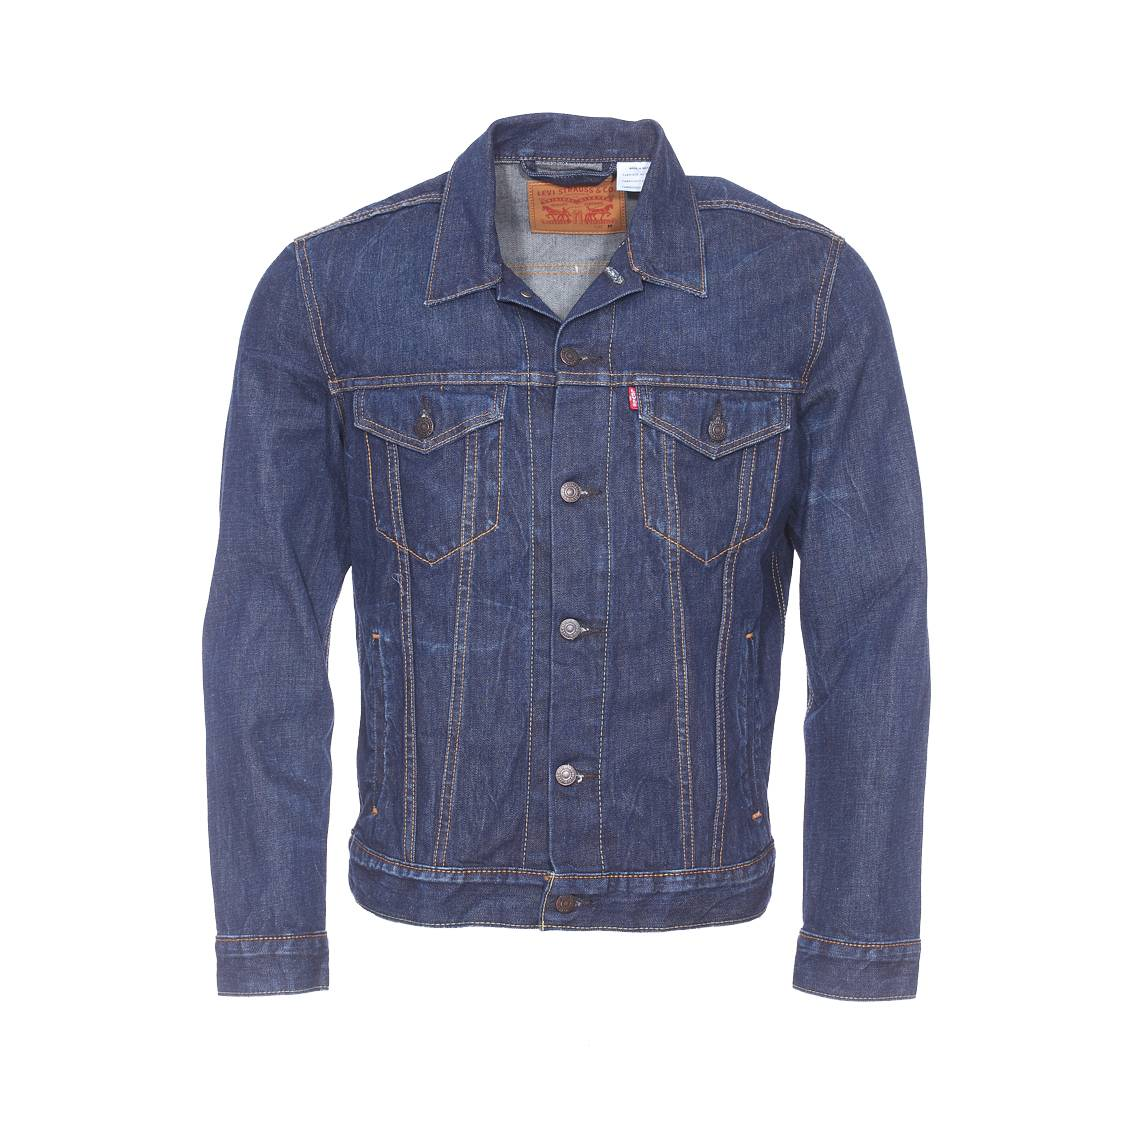 veste en jean trucker levi 39 s bleu brut rue des hommes. Black Bedroom Furniture Sets. Home Design Ideas